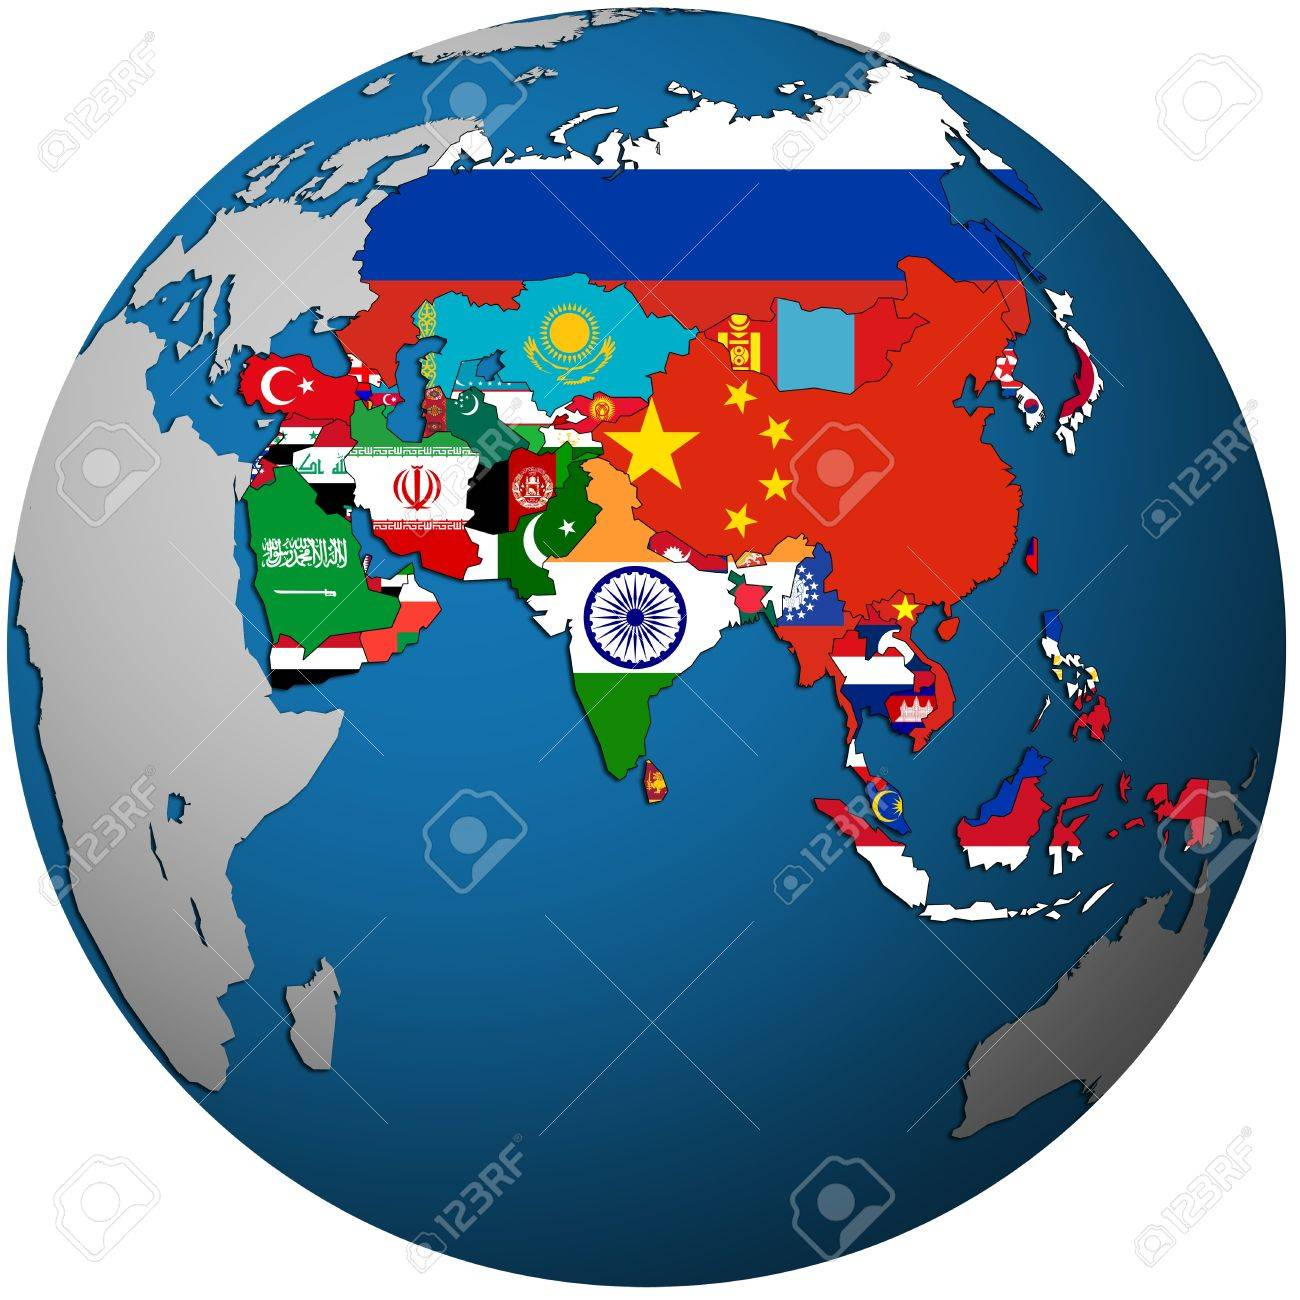 Isolated Over White Territories Of Asian Countries With Flags - Globe map with countries